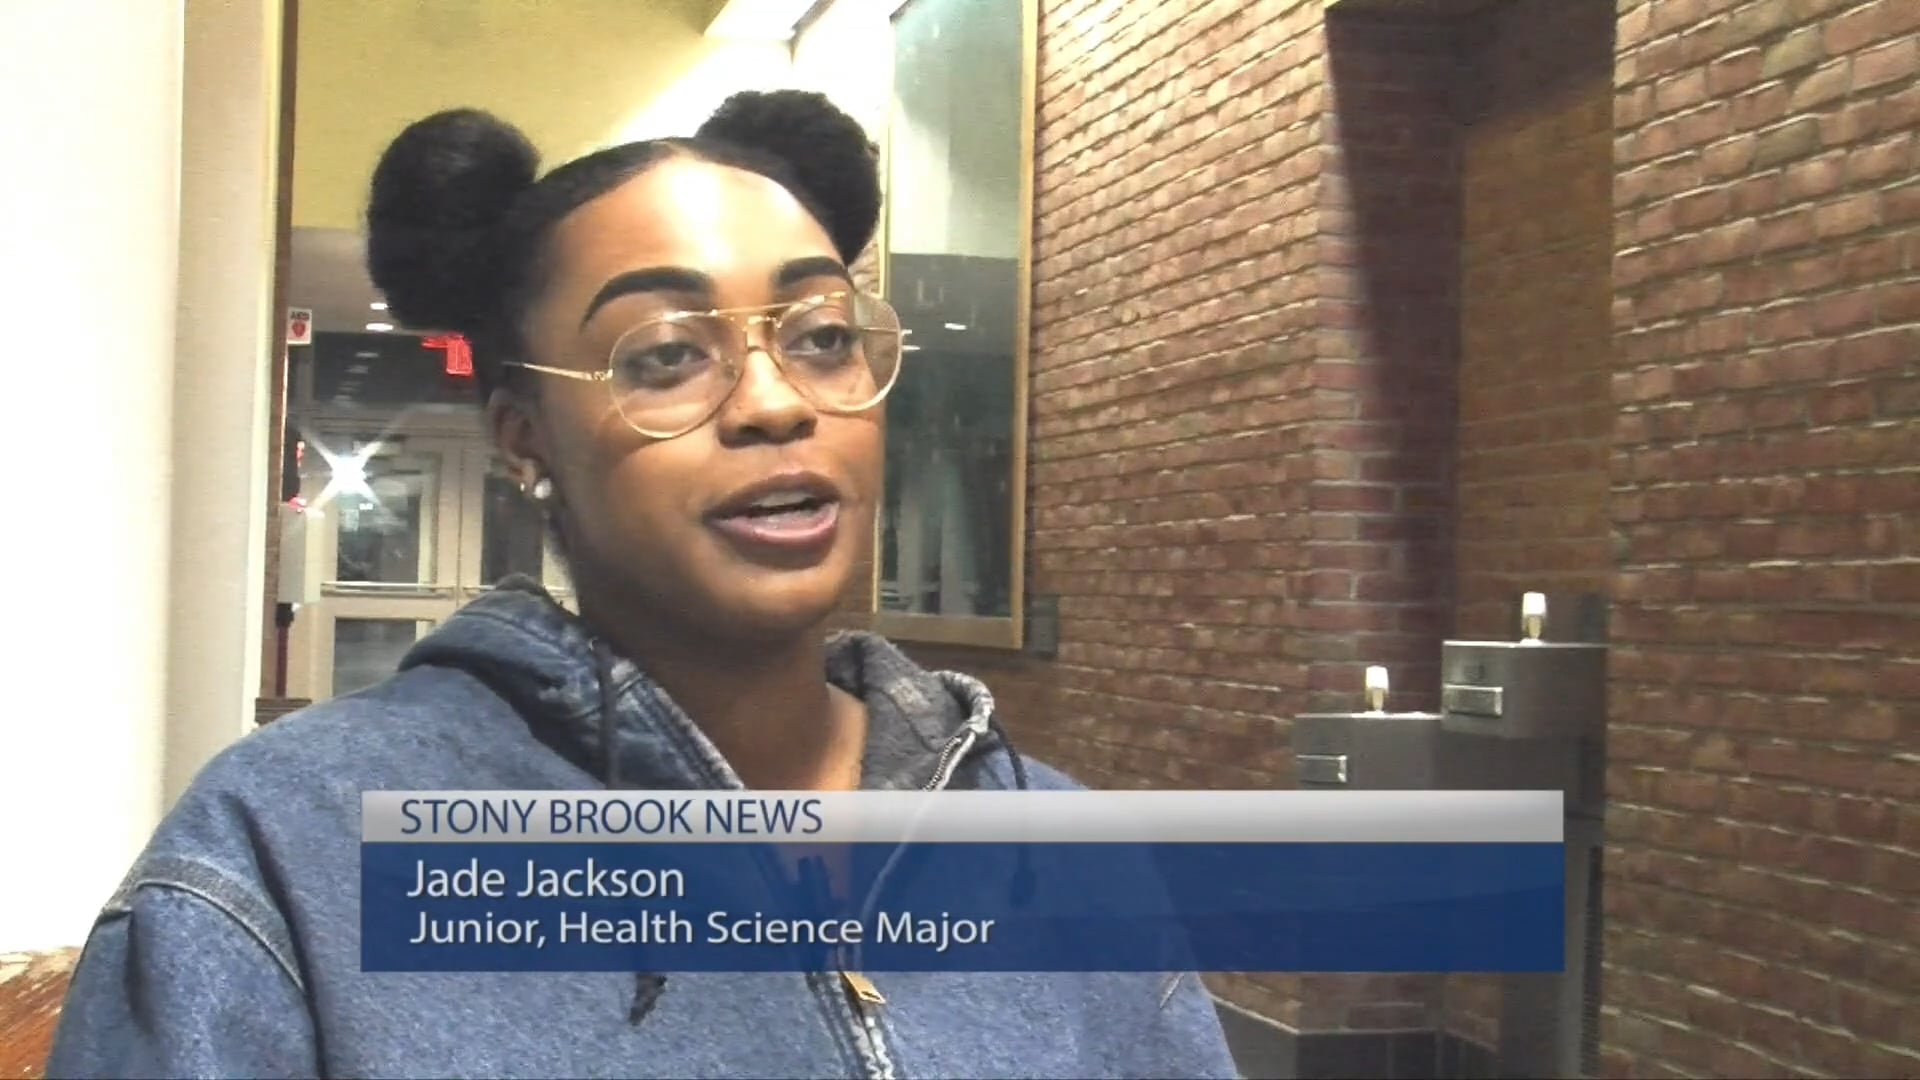 Stony Brook News: Afro-Punk Culture Celebrated